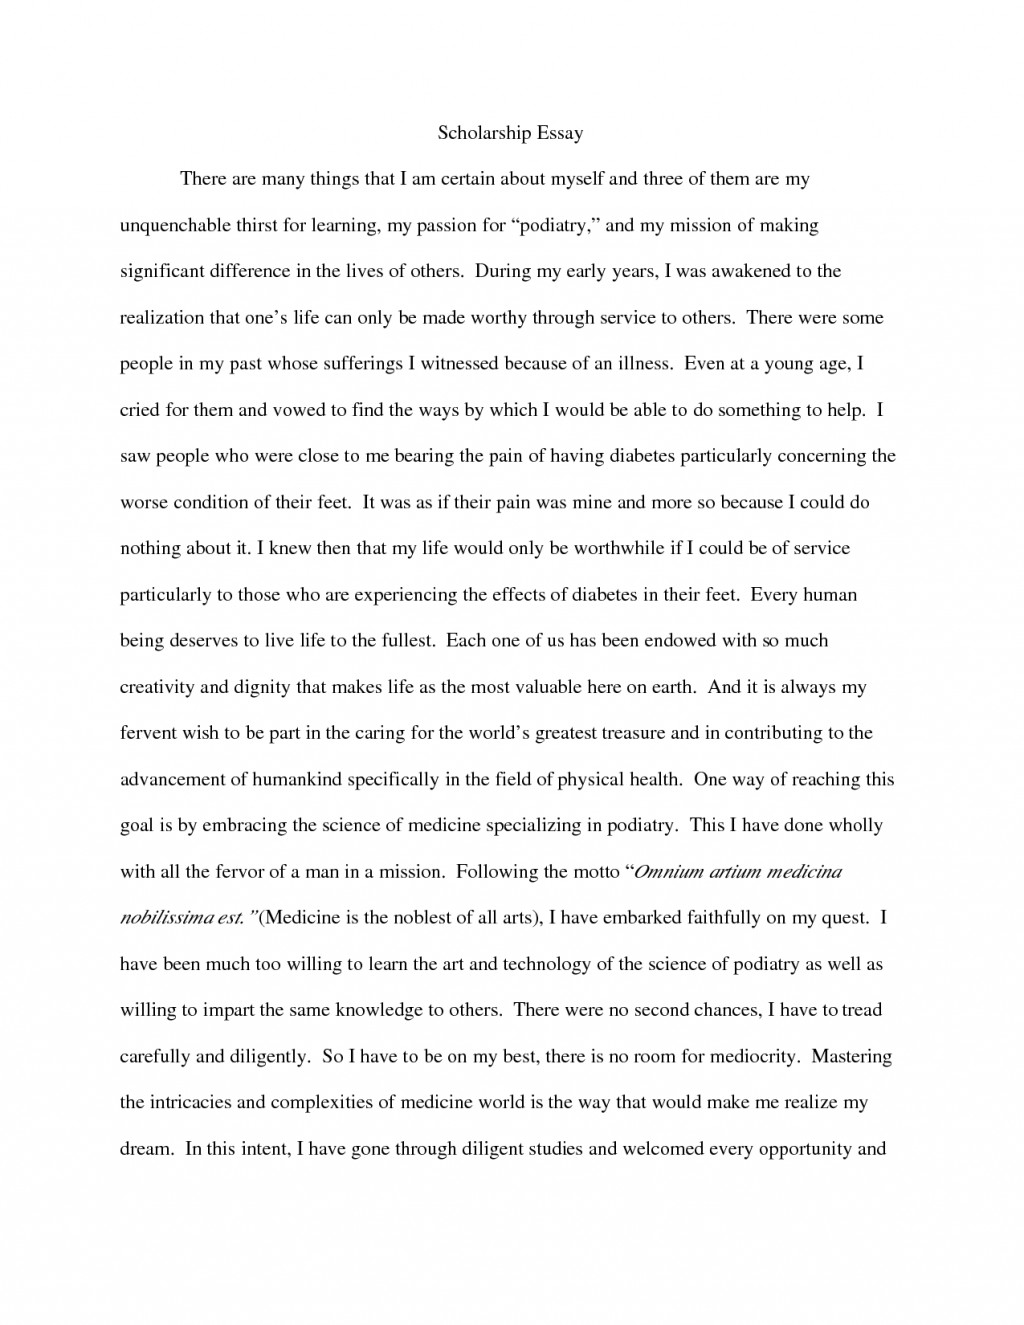 012 Essay Example Scholarships With Essays Examples Of Singular Without Writing For High School Juniors Class 2020 No 2019 Large